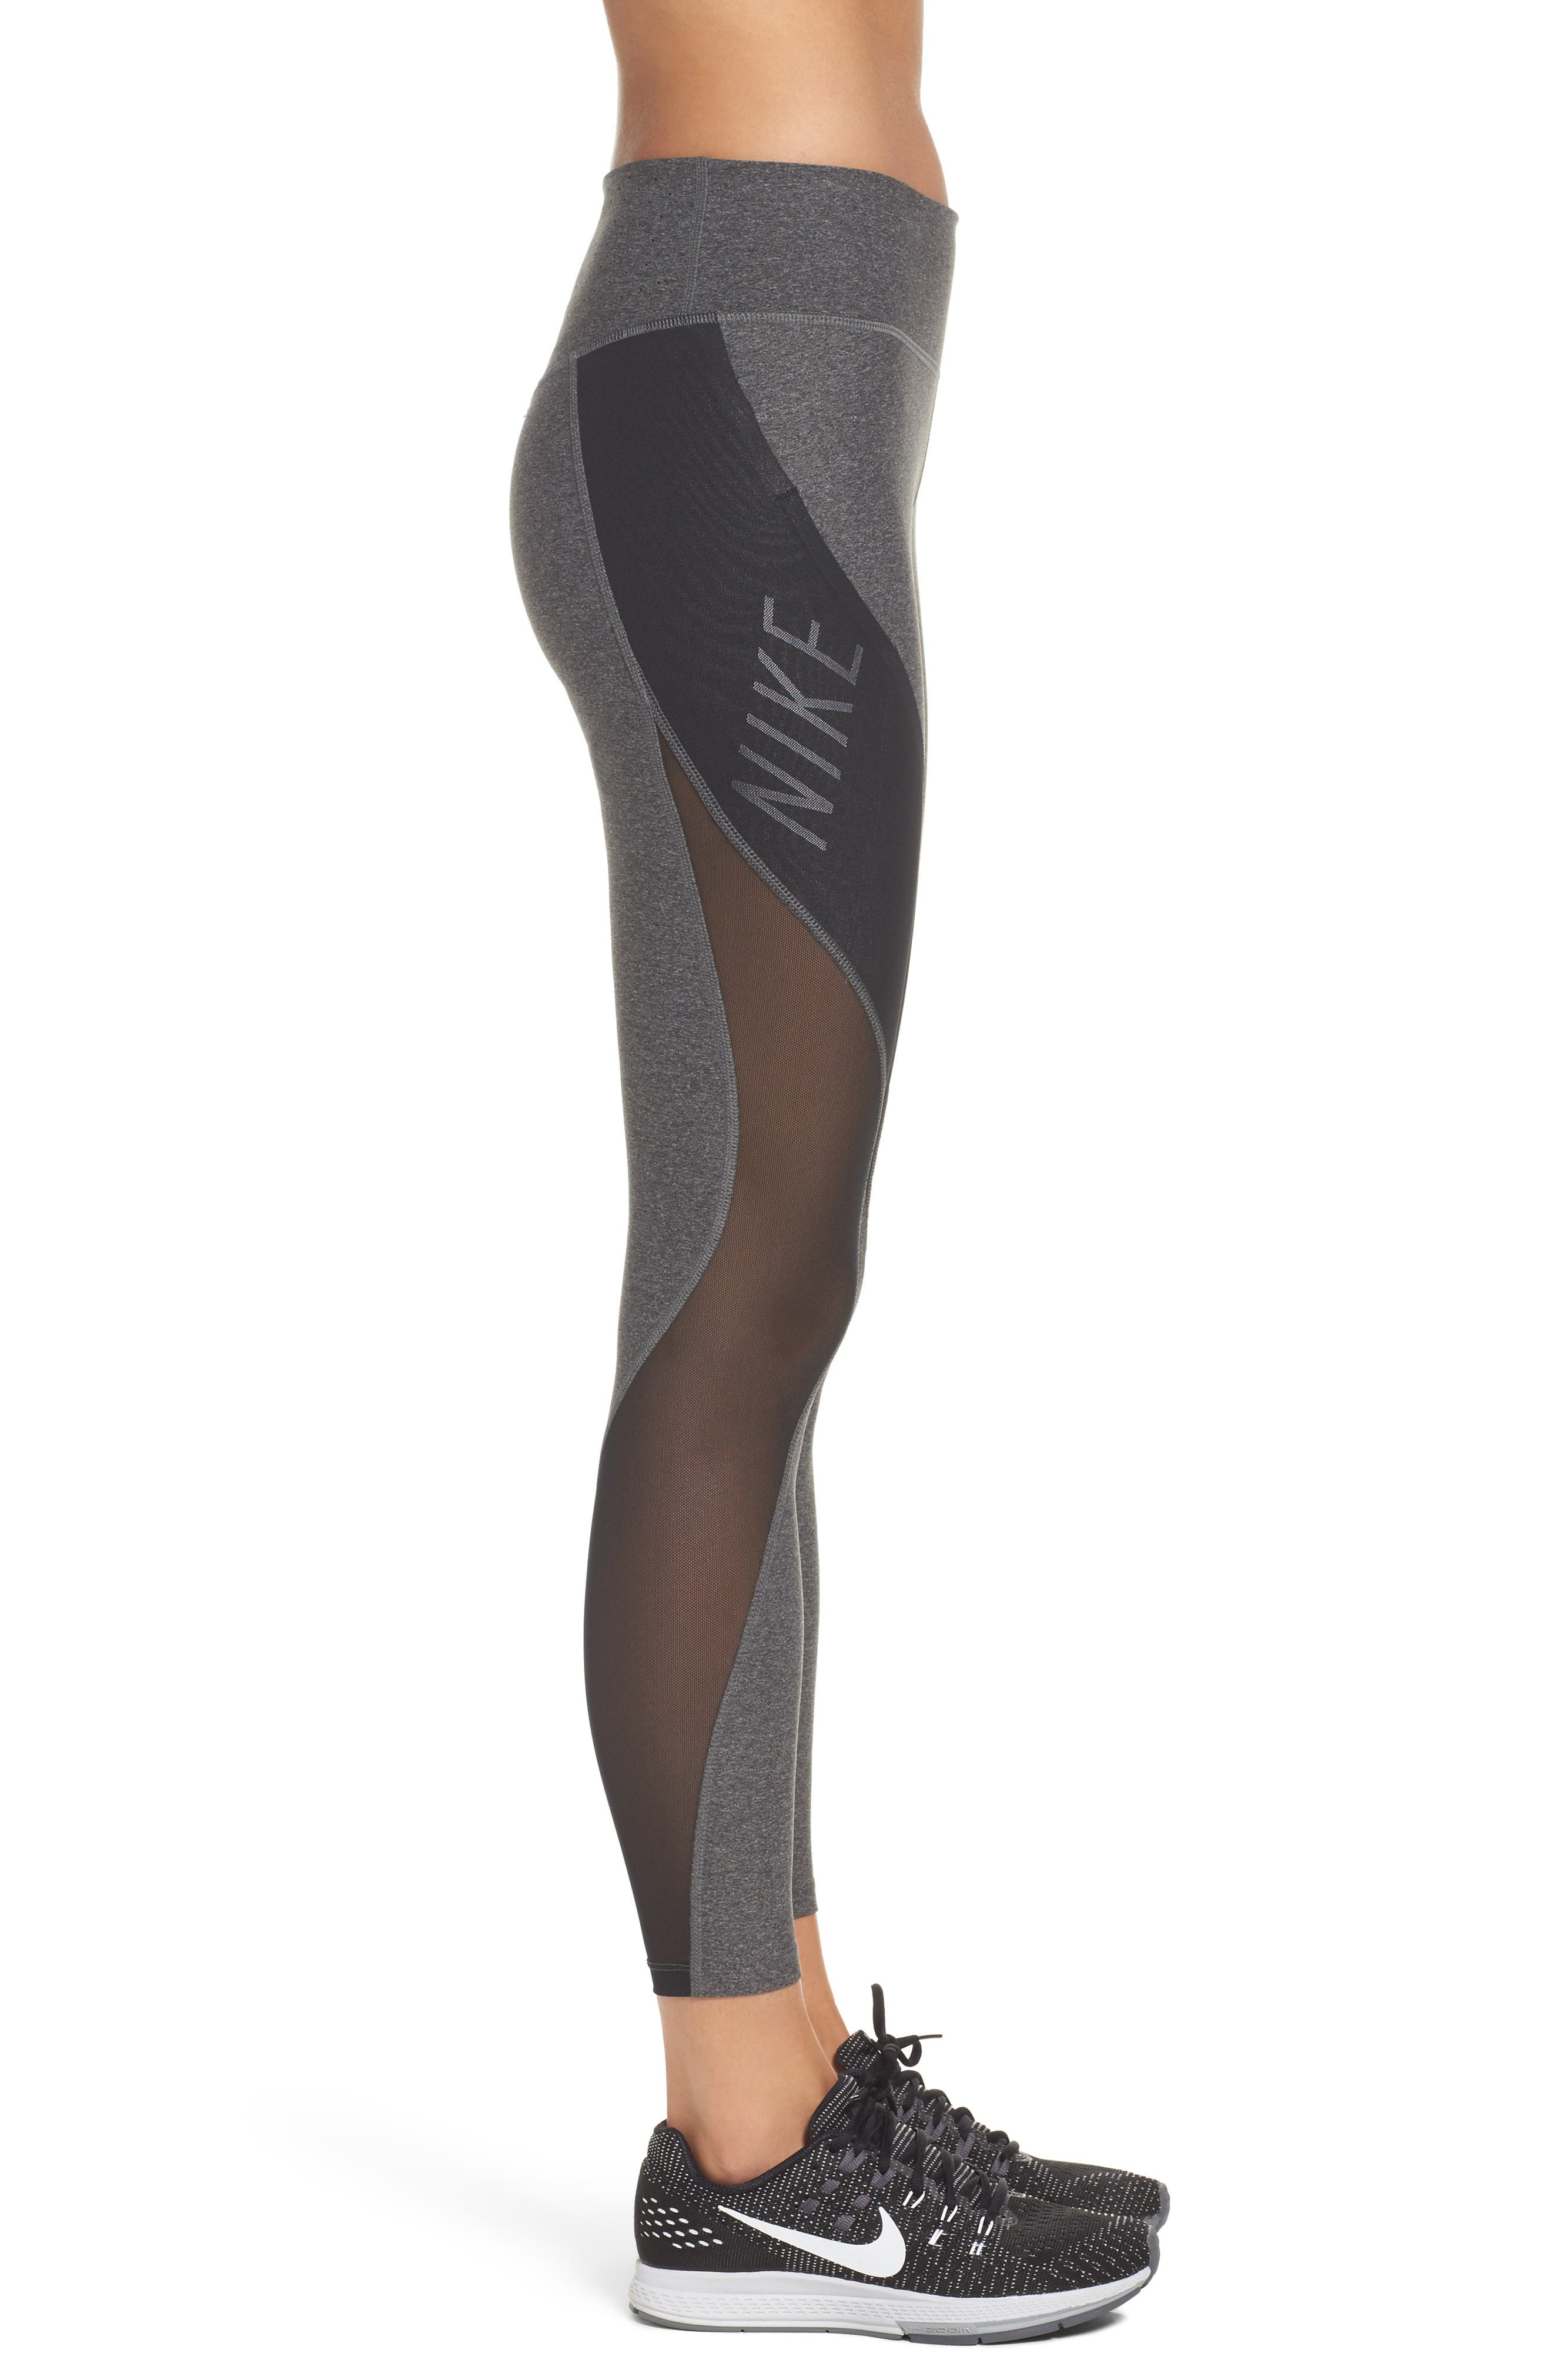 Power Legend Training Tights,                             Alternate thumbnail 3, color,                             Charcoal Heather/ Black/ White